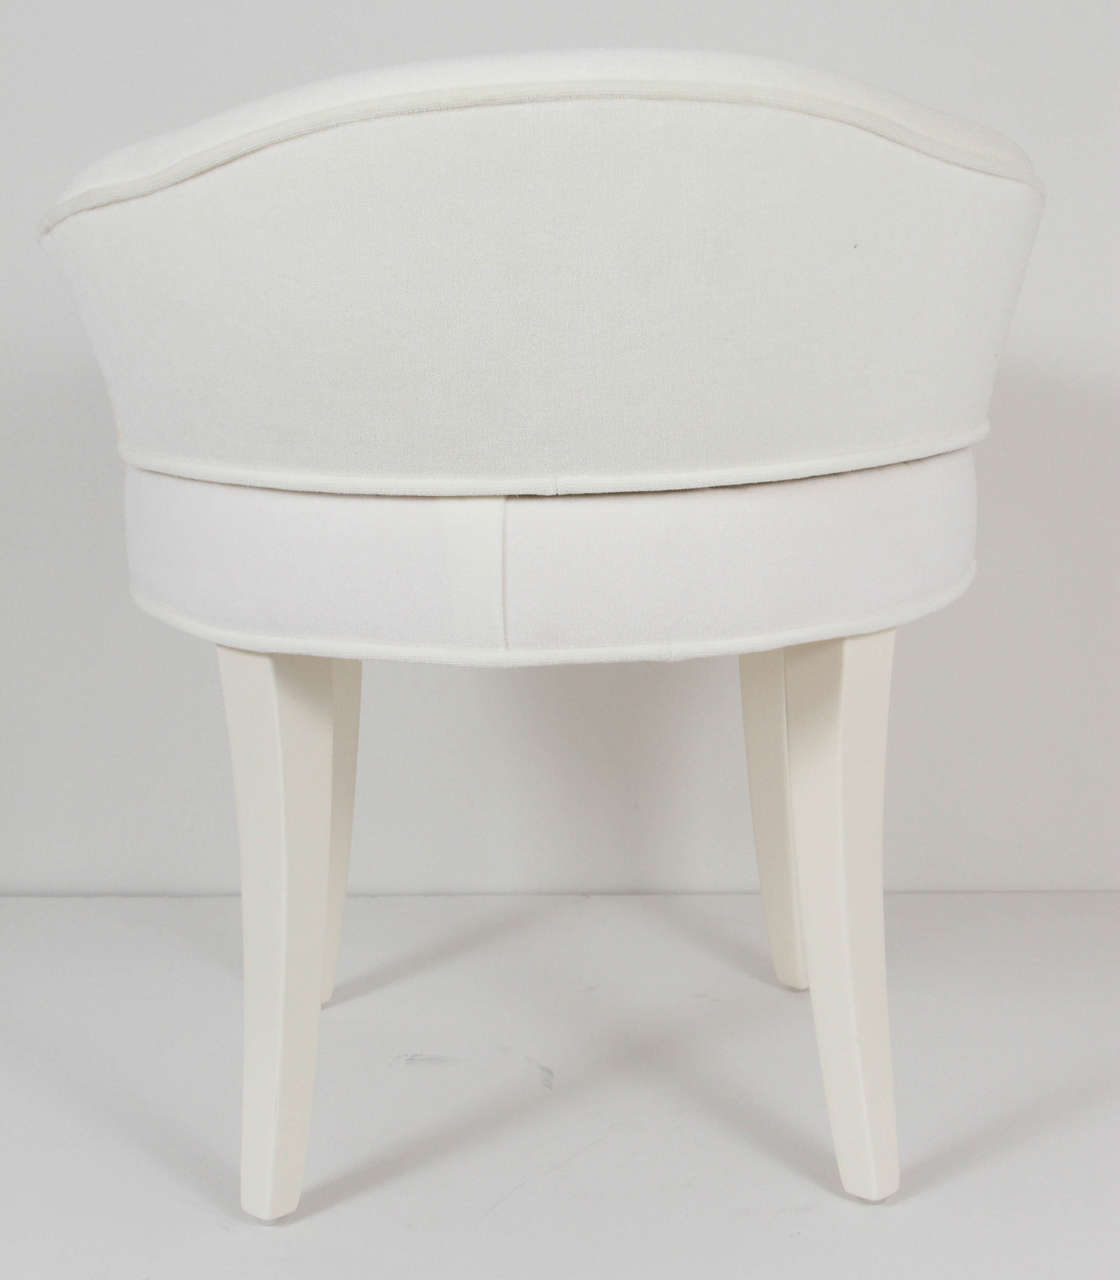 Upholstered Vanity Chair Samuel Marx Upholstered Vanity Stool At 1stdibs